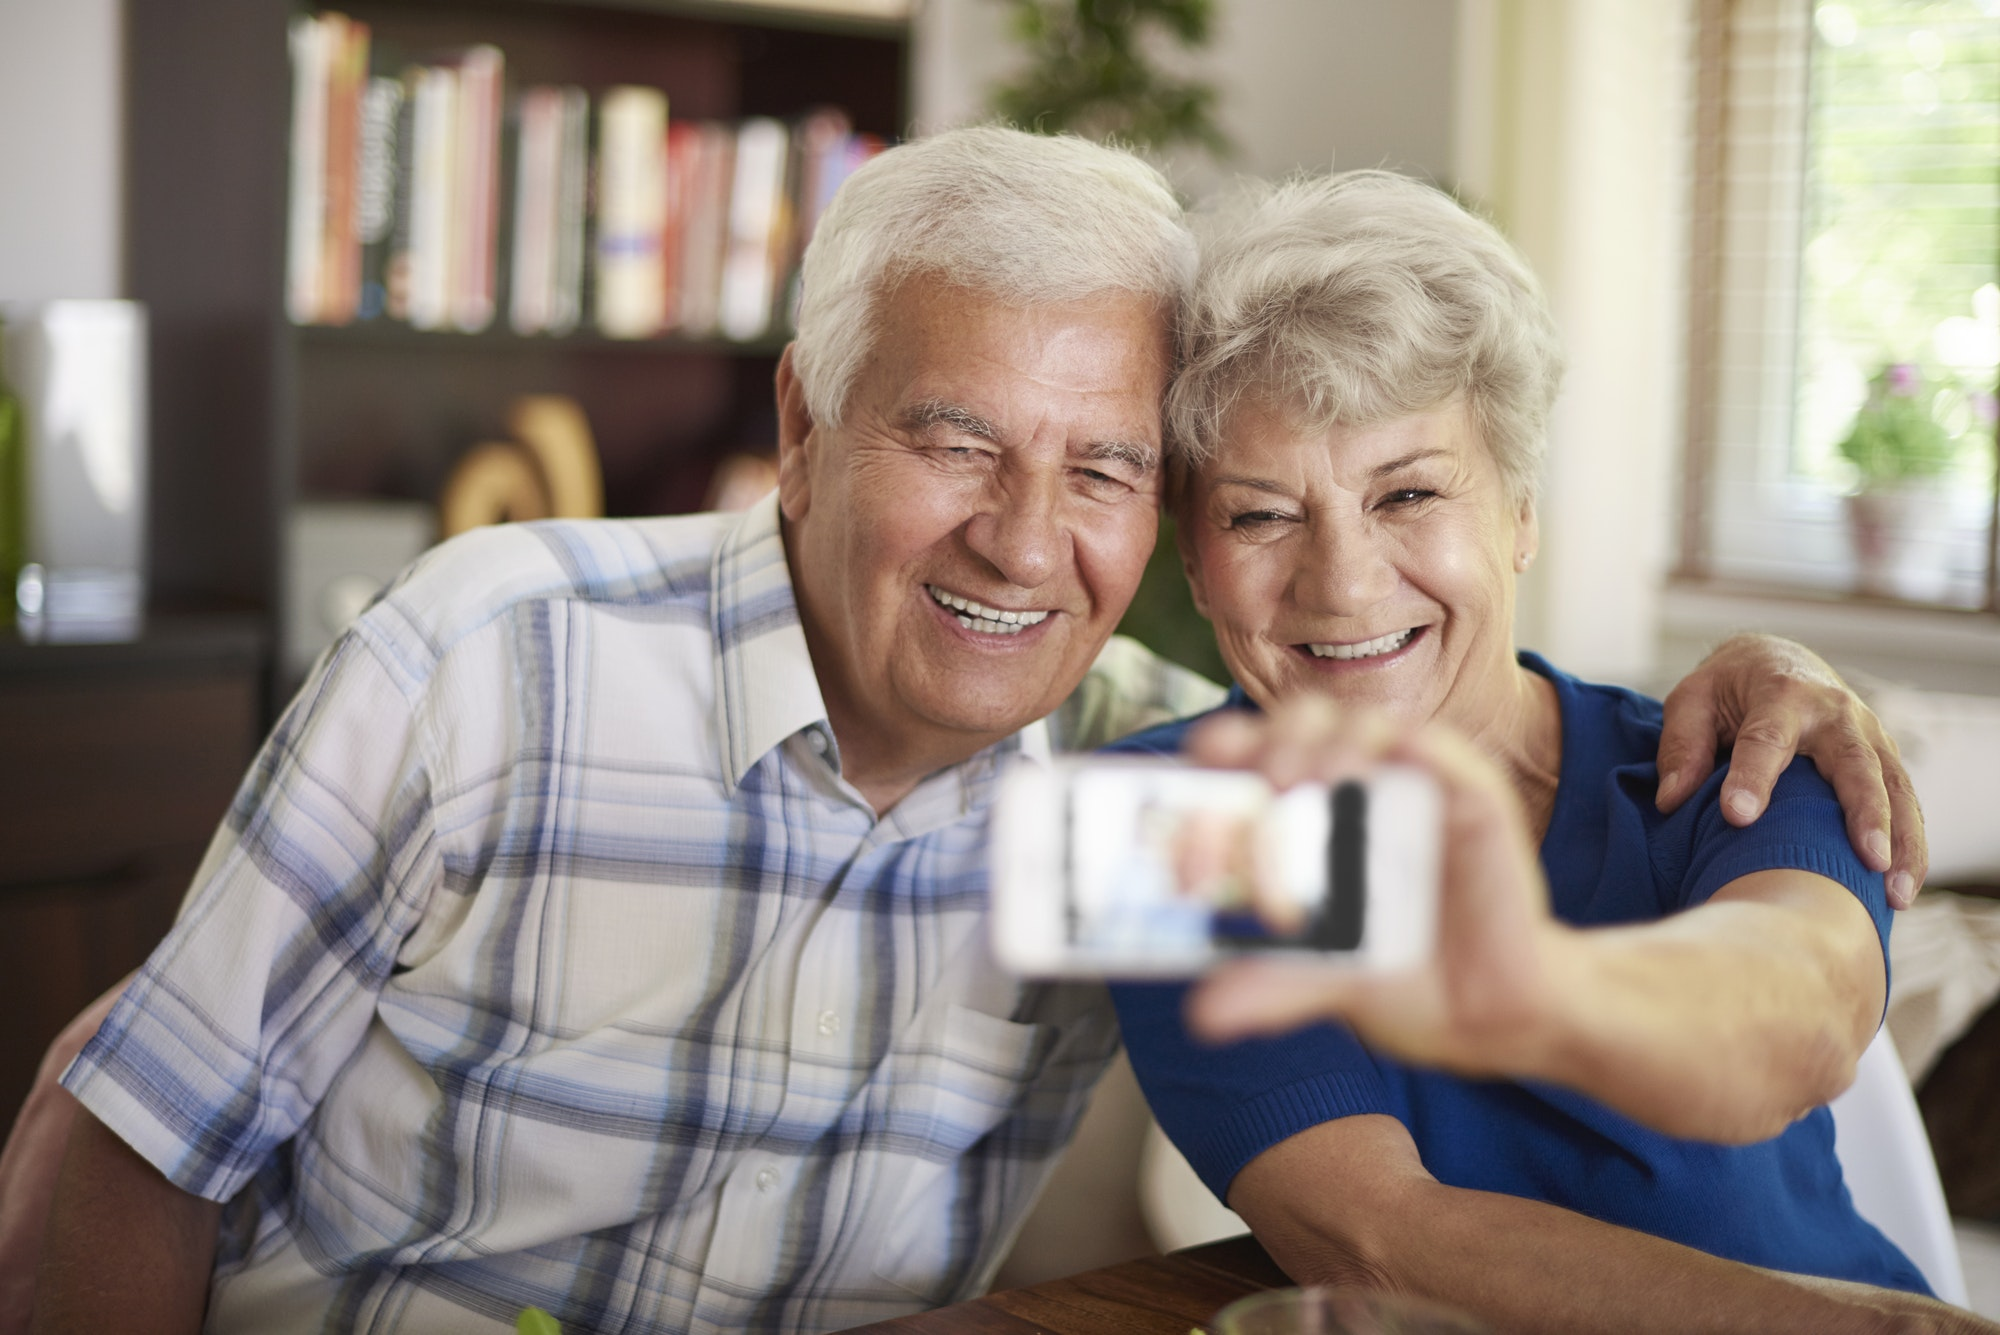 Grandparents taking a selfie with their smartphone